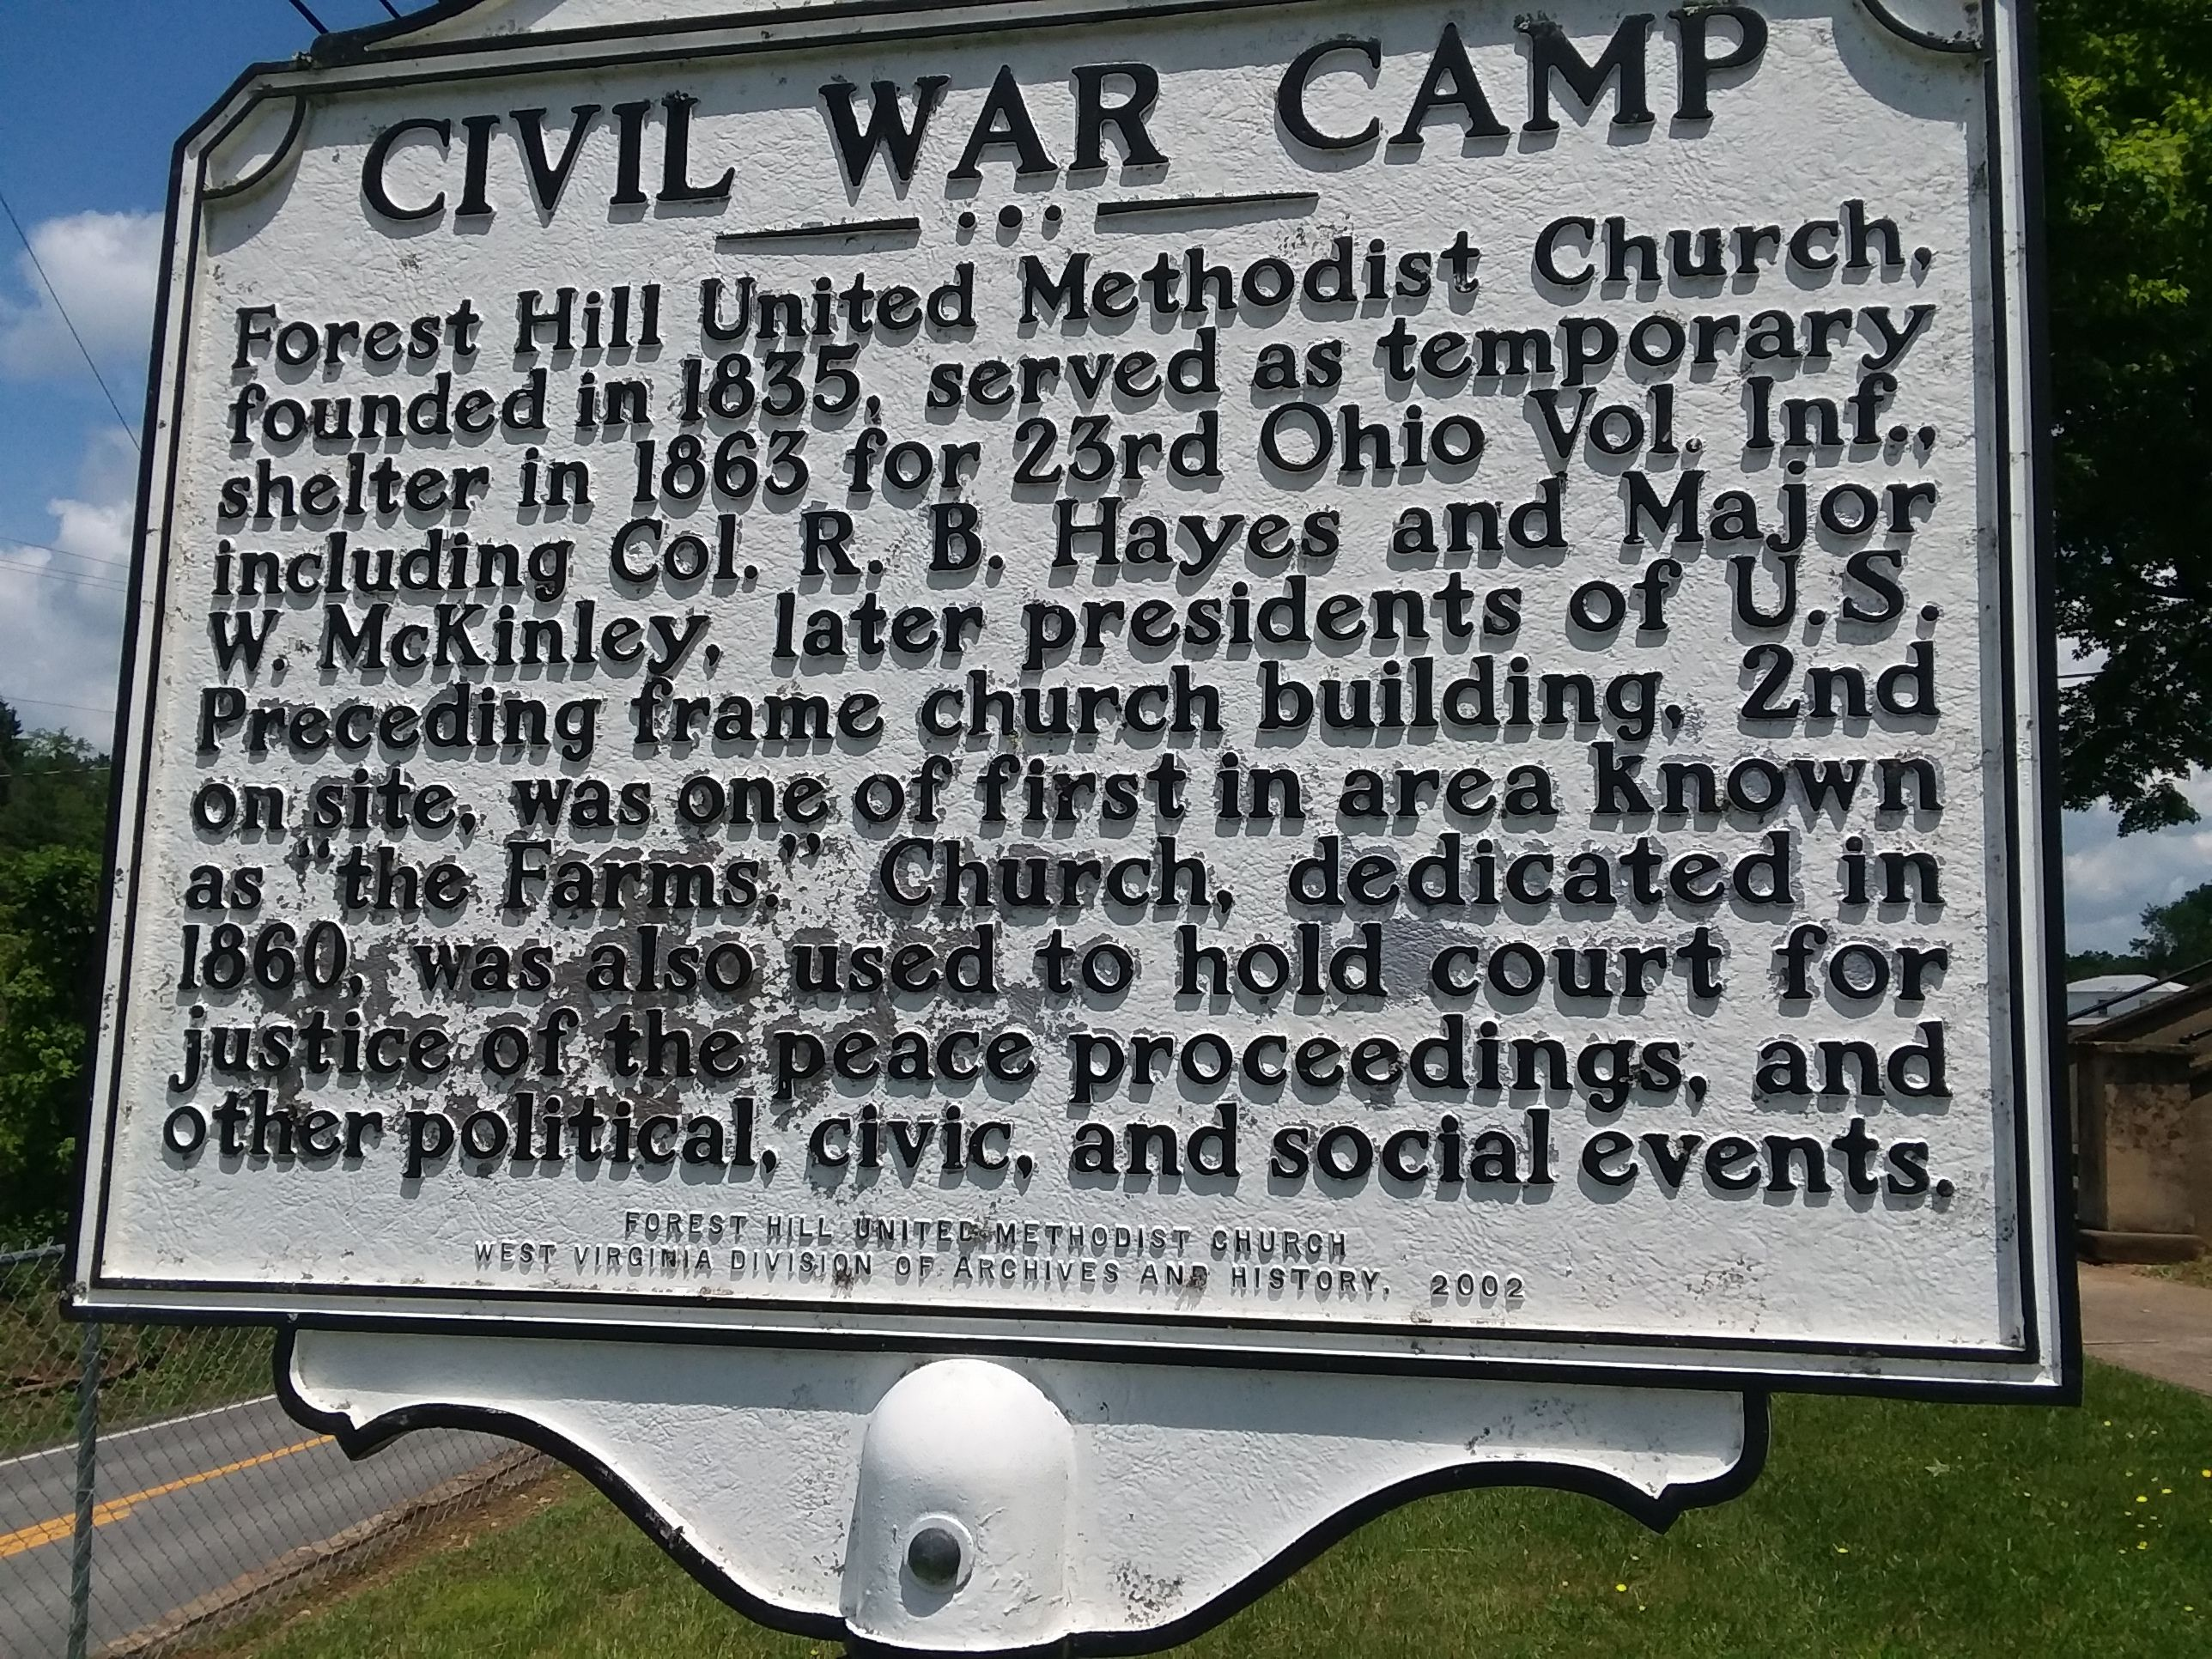 This Historical Marker is located in front of the Forest Hill United Methodist Church and was dedicated in 2002